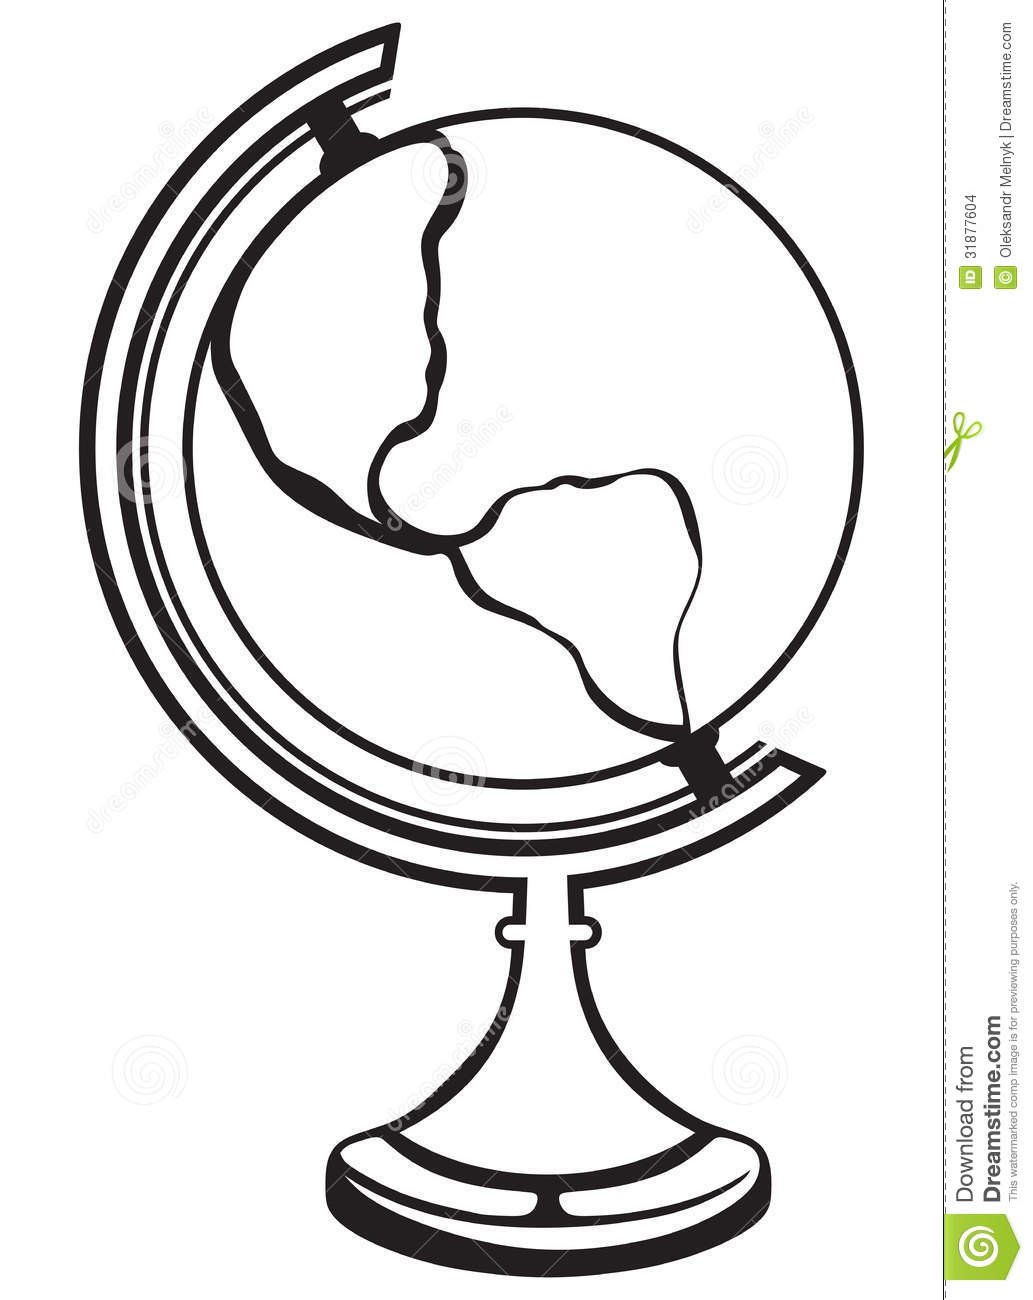 Silhouette Globe Stock Vector Illustration Of Isolated